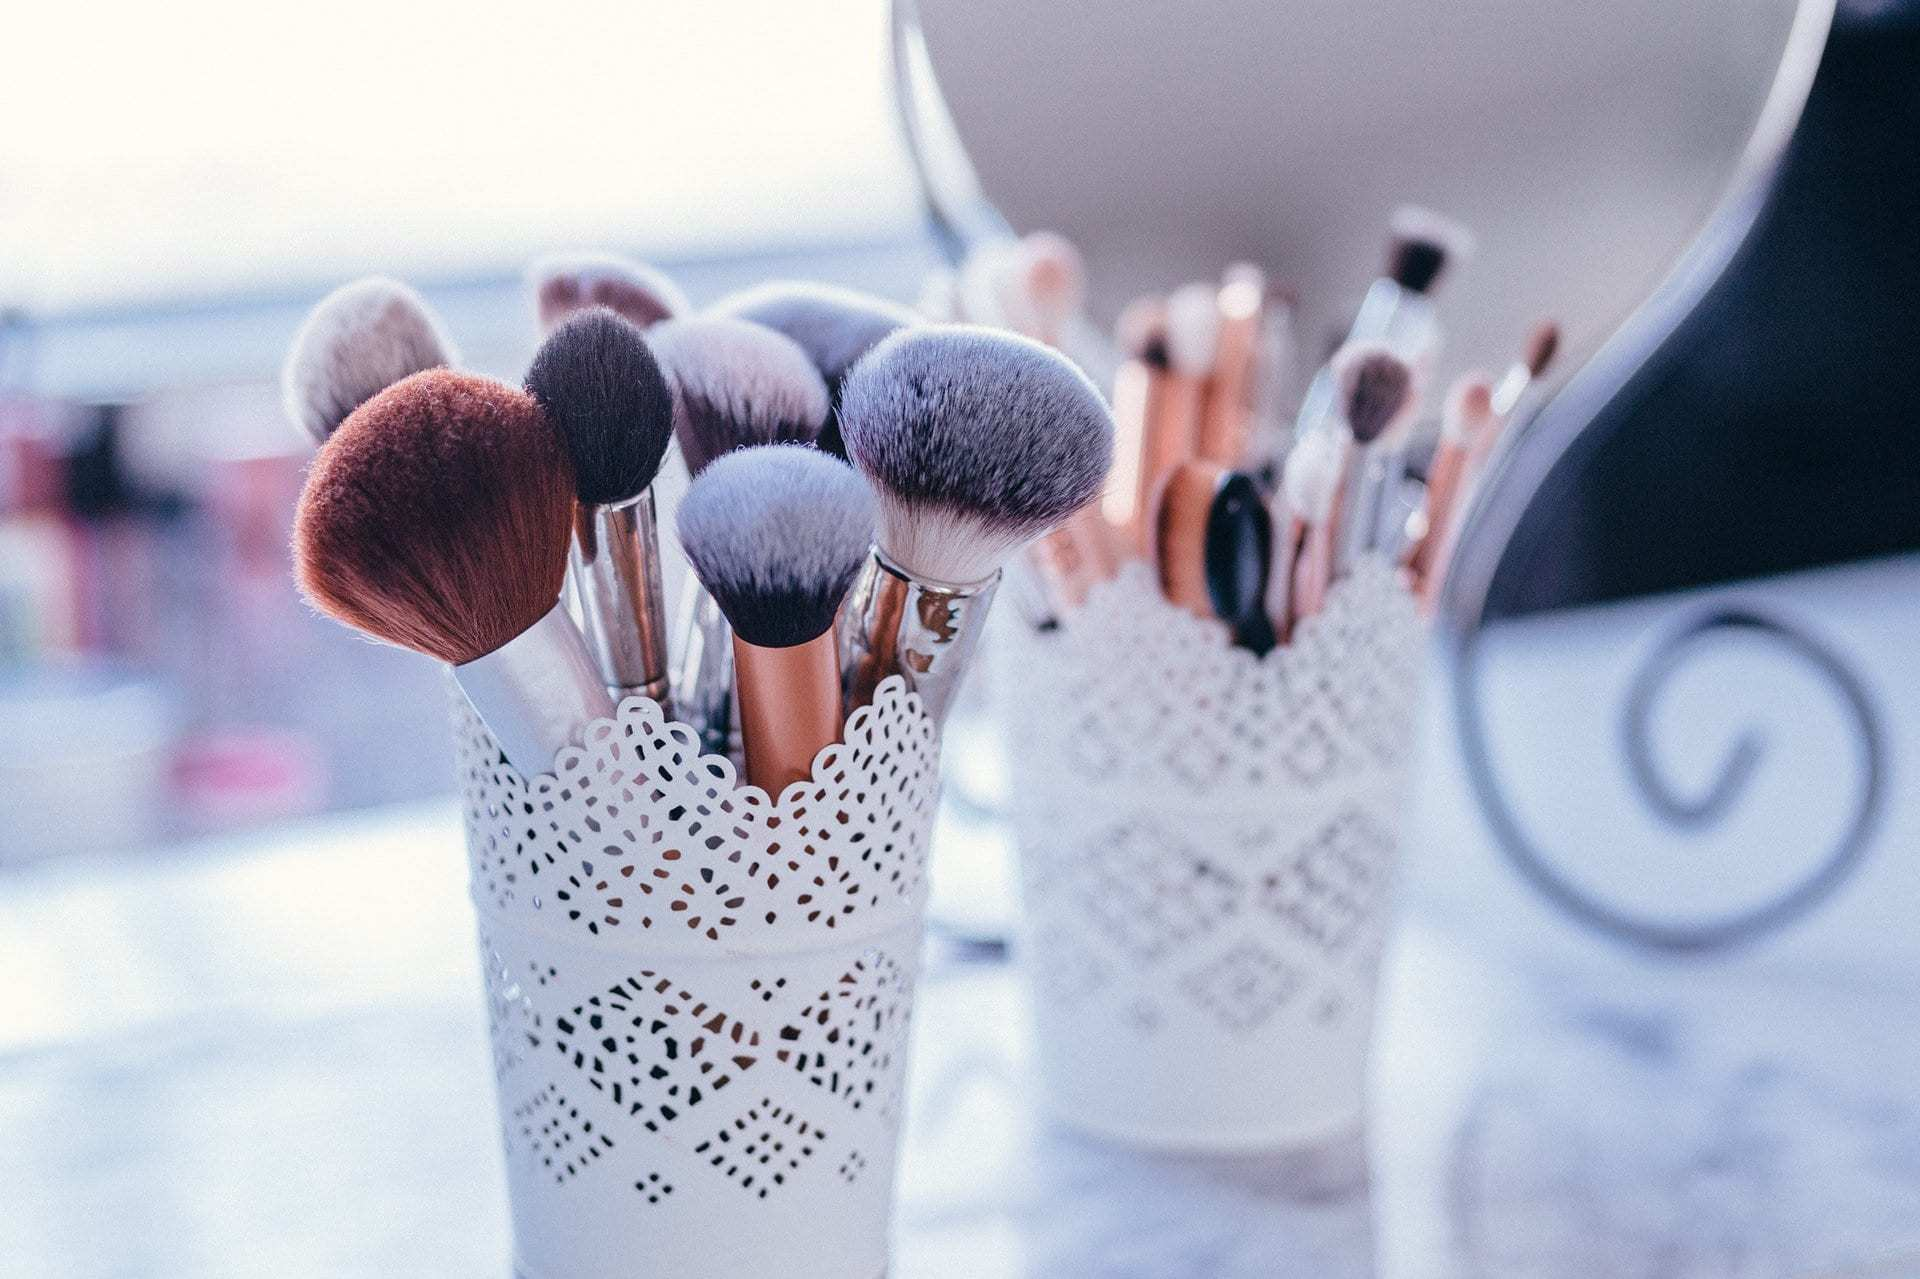 Curious on which makeup brushes you really need? Check out this ultimate makeup brush guide with a beginner's guide to makeup brushes, how to use them, and the best affordable makeup brushes!